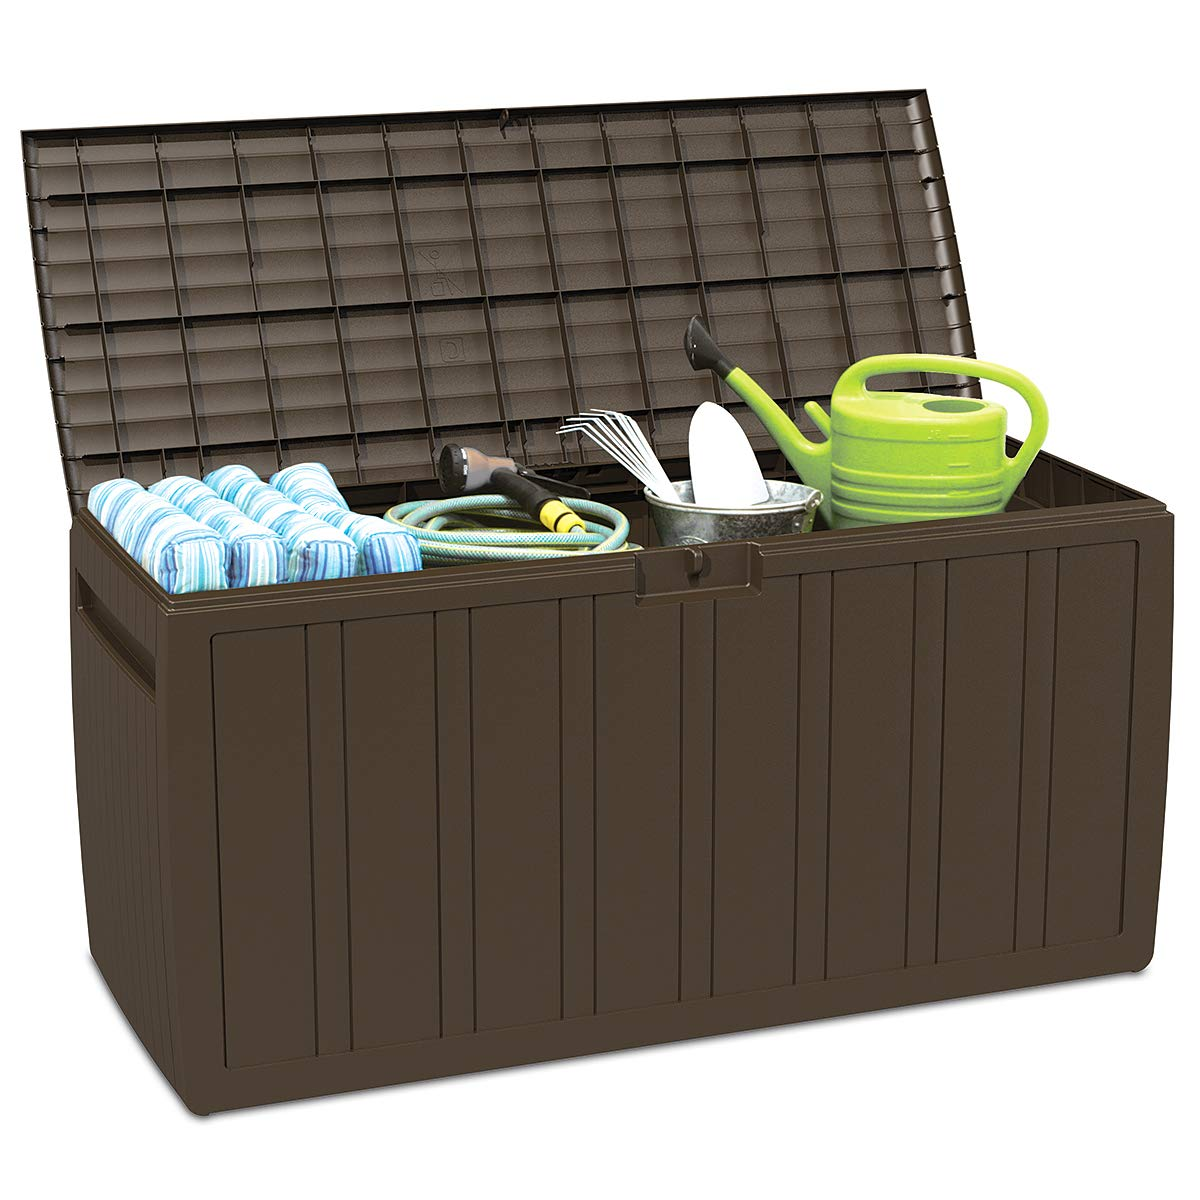 Giantex 80 Gallon Deck Box W/Handles for Easy Carrying Garden Container for Patio Garage Shed Backyard Storage Outdoor Tool Box (Brown) by Giantex